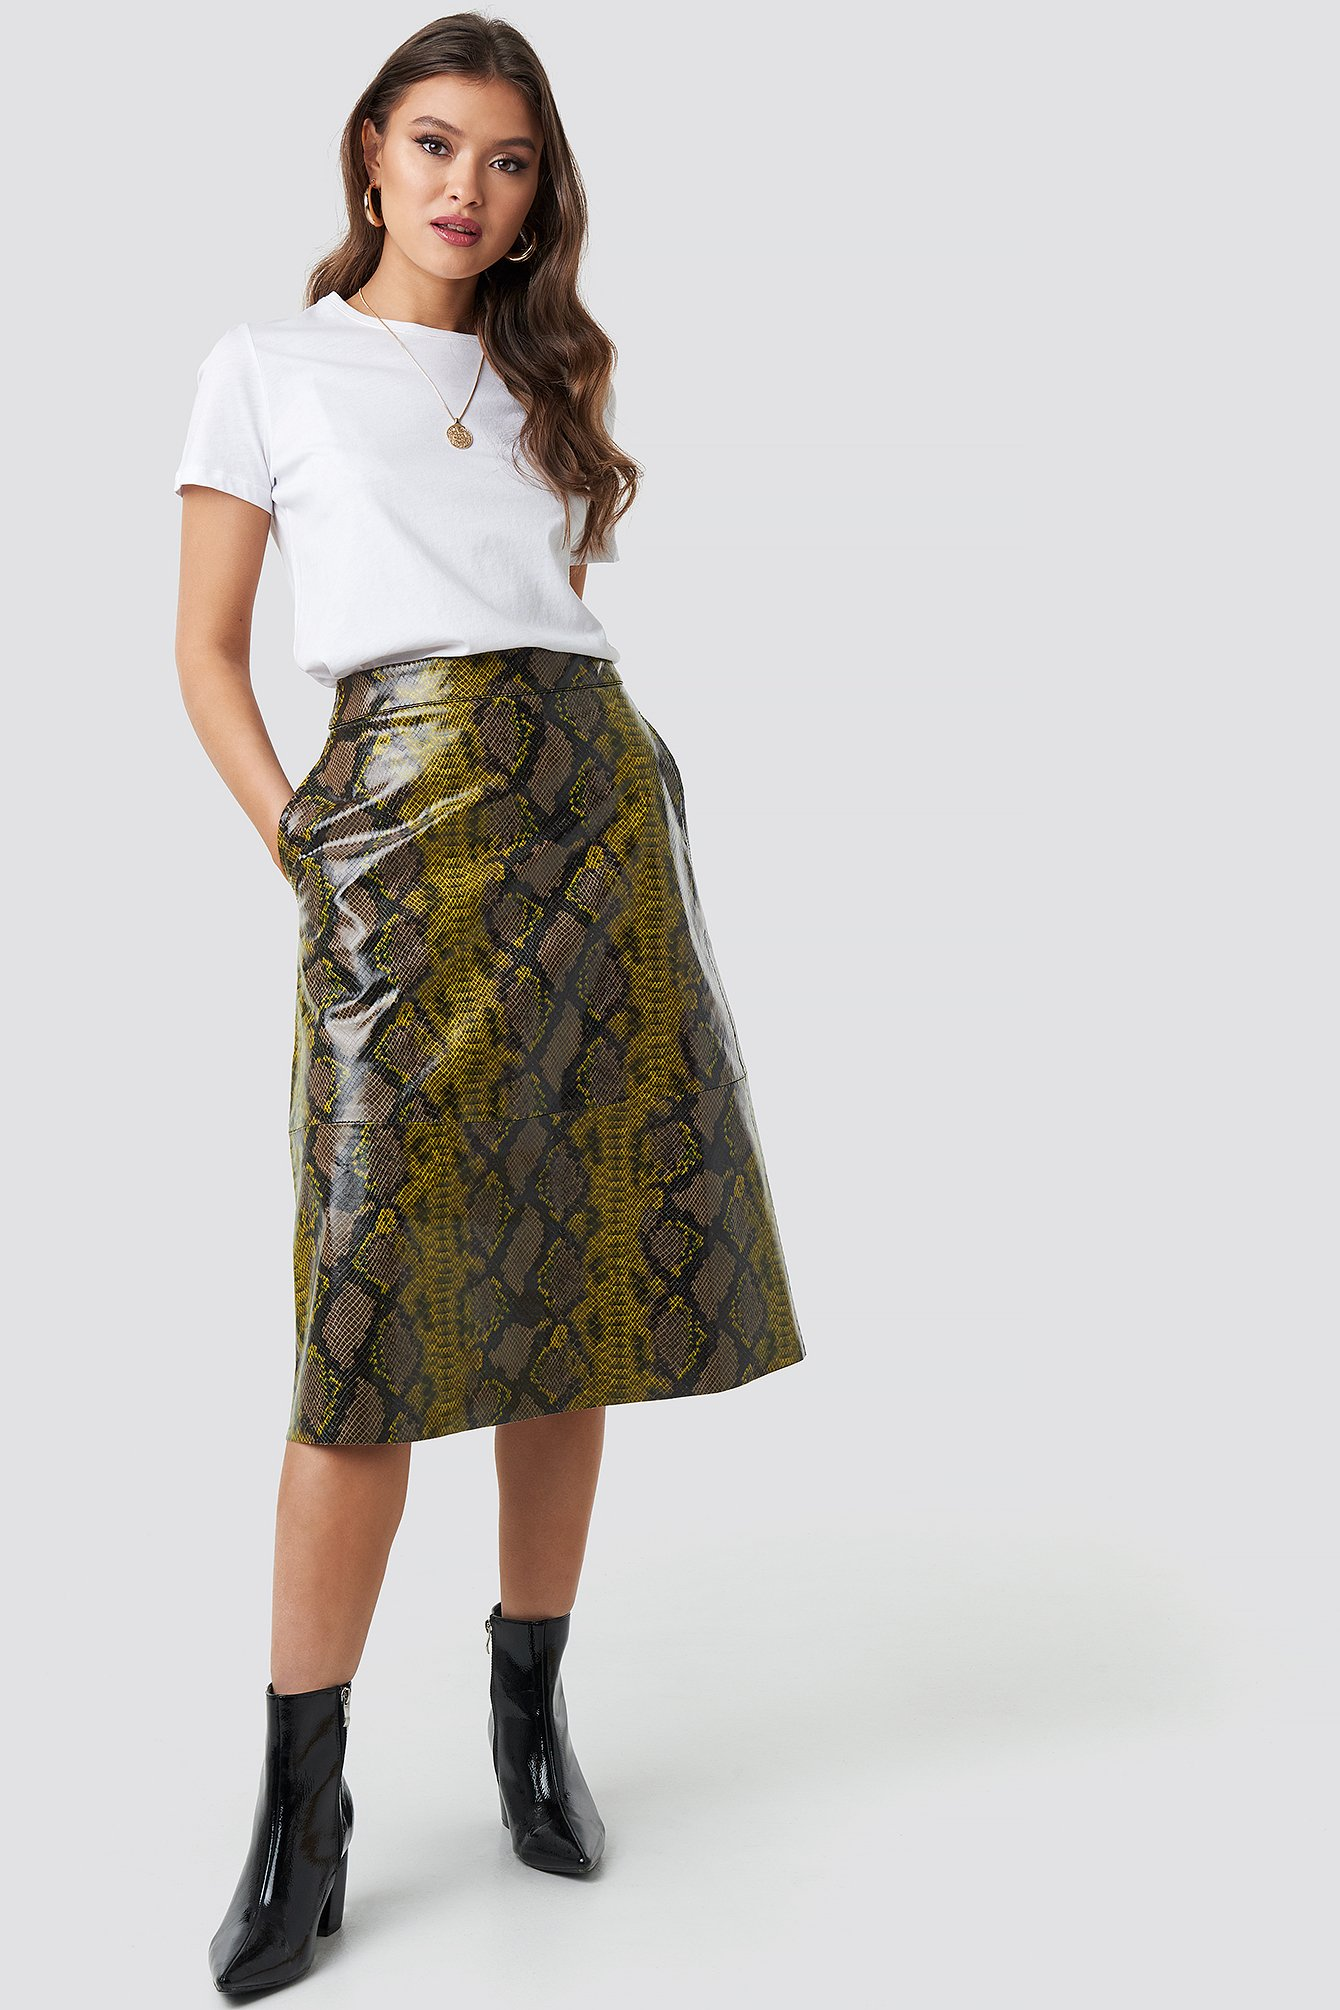 na-kd trend -  Snake Printed A Line Midi Skirt - Brown,Green,Multicolor